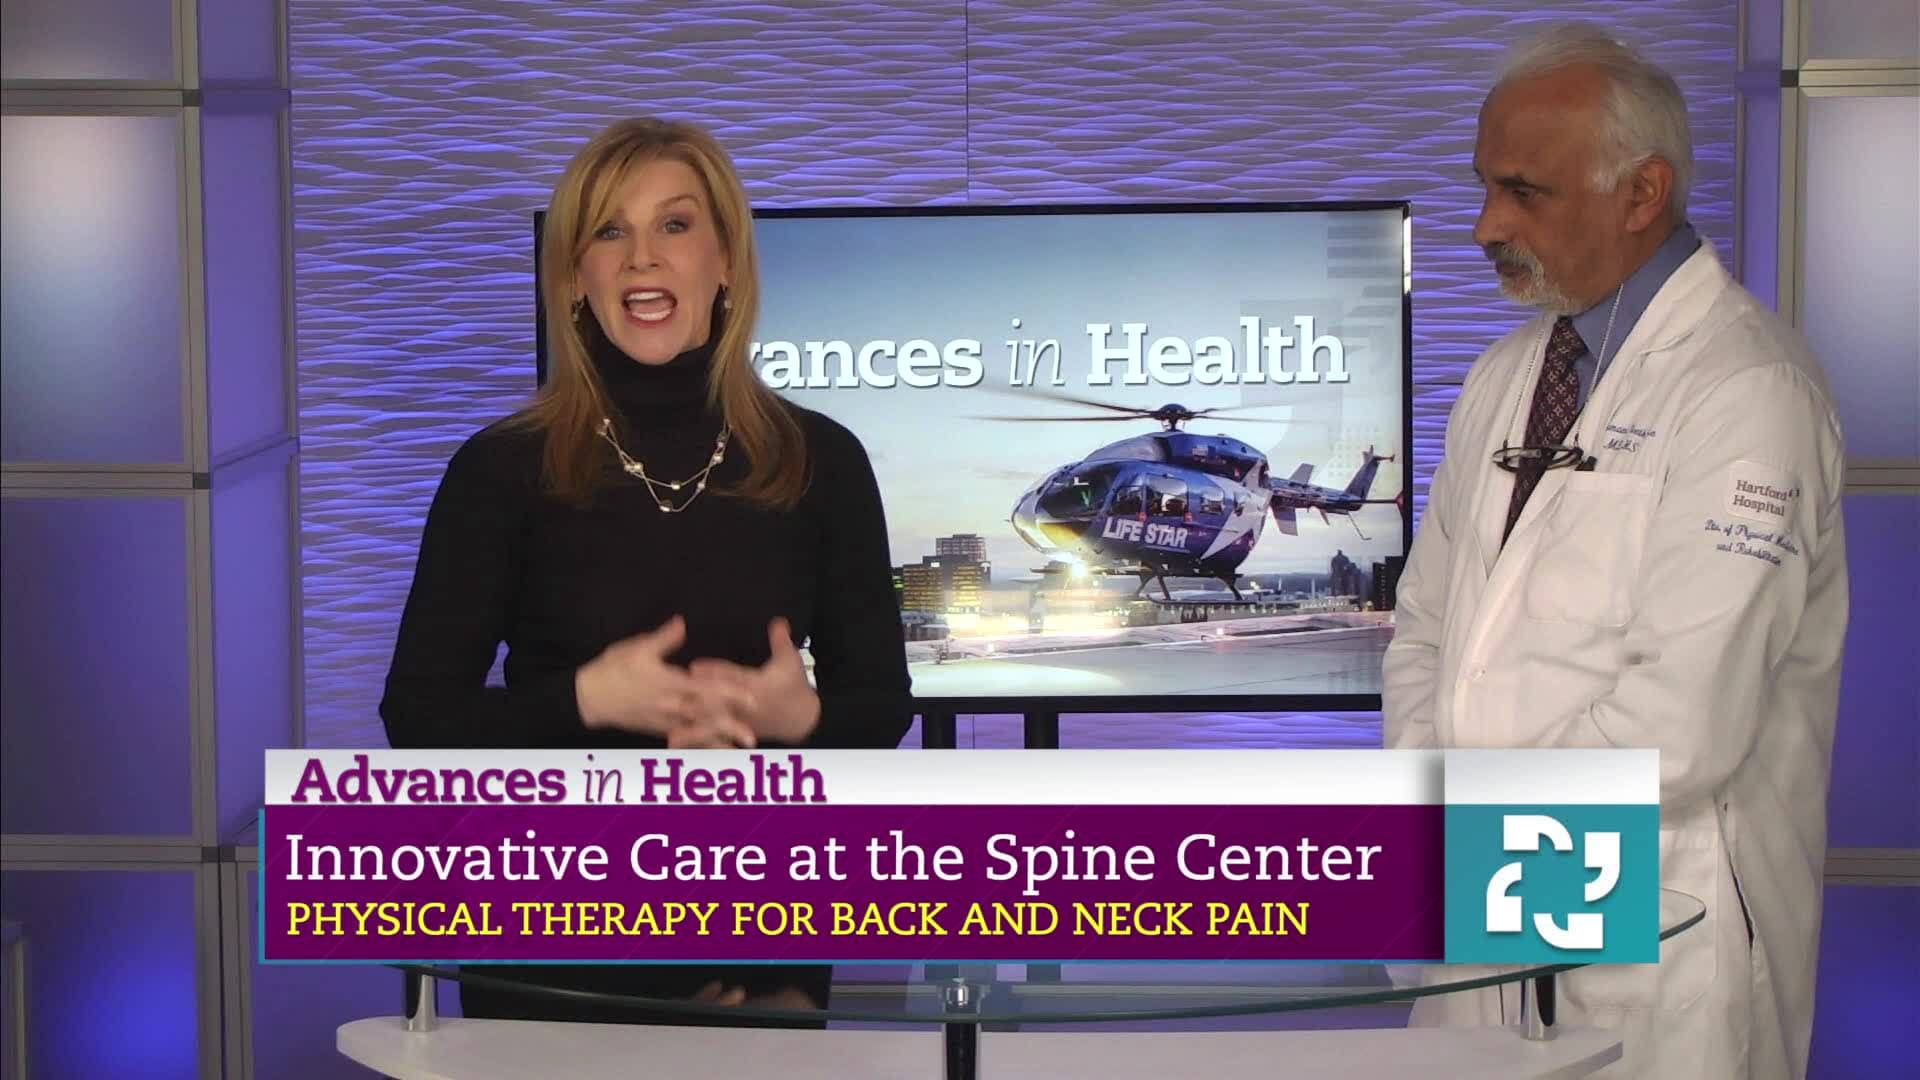 Advances in Health: Innovative Care at the Spine Center